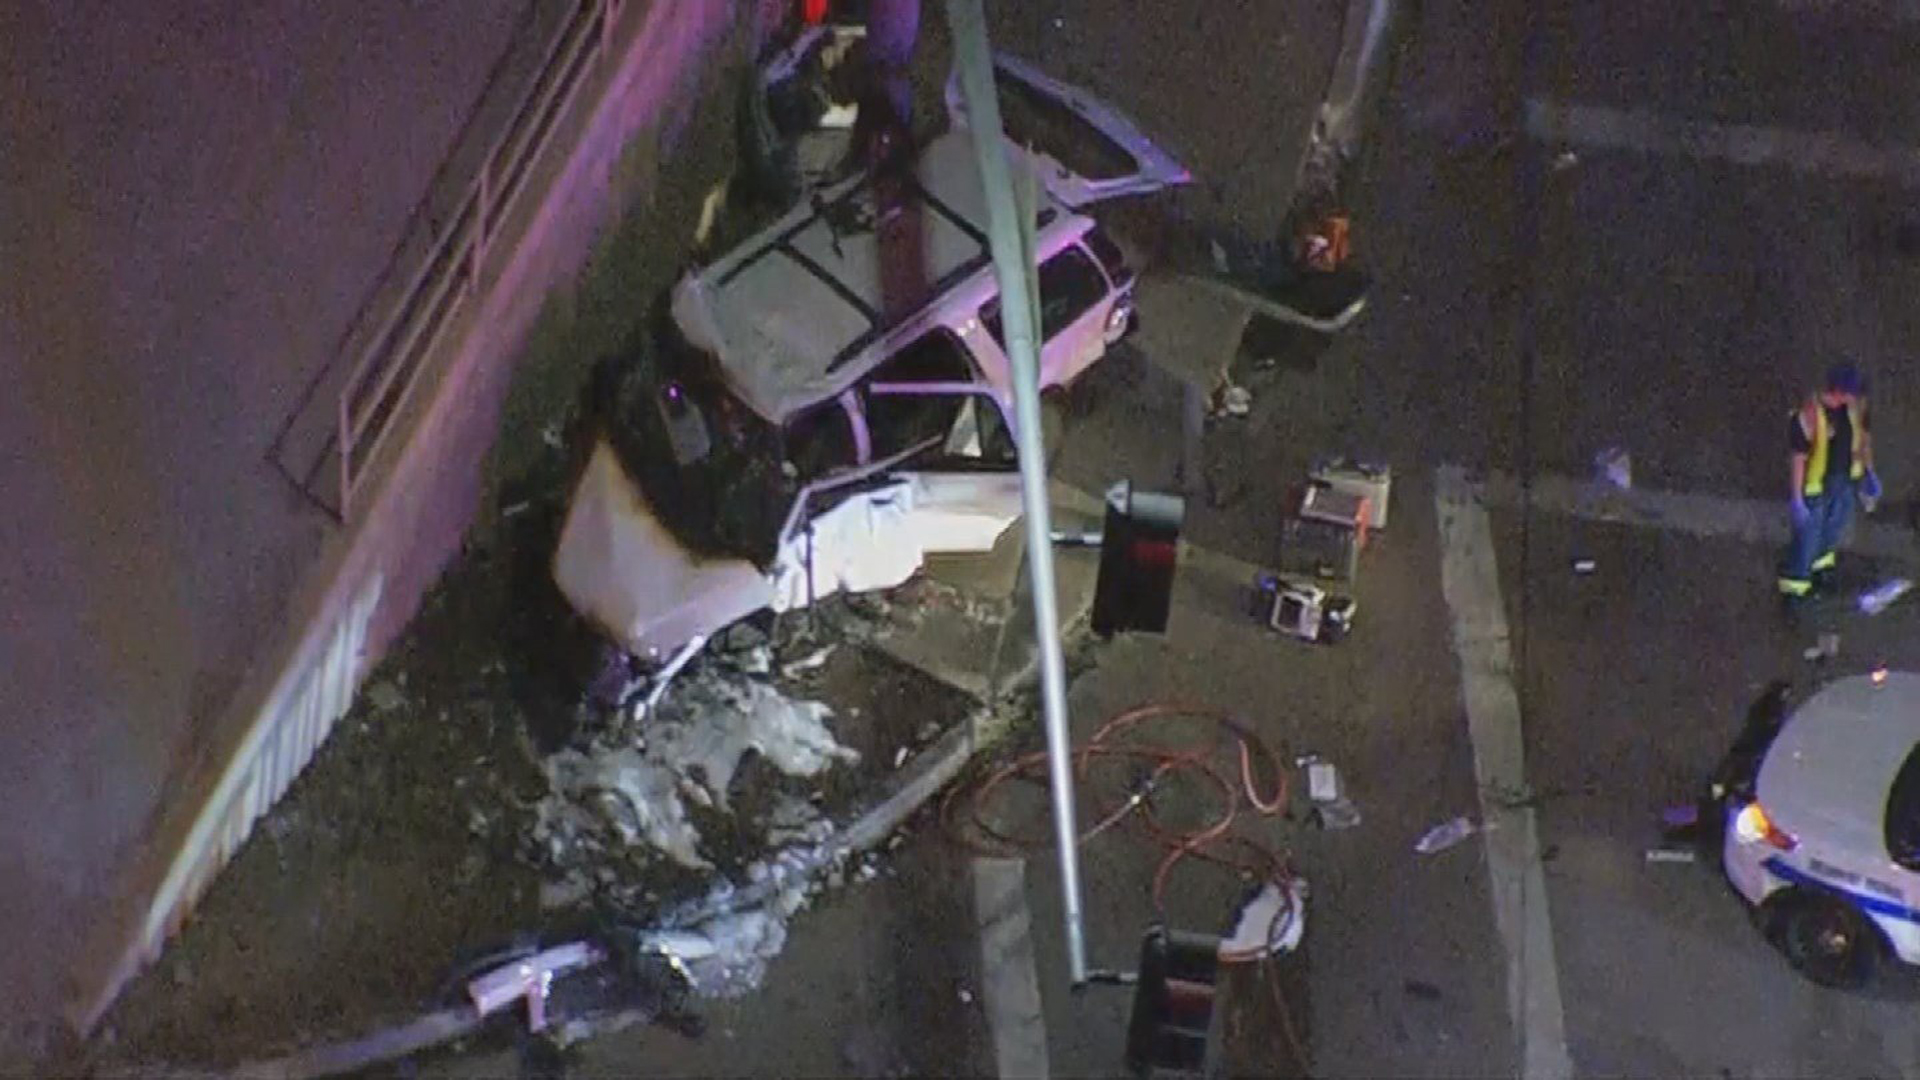 Phoenix police say a 14-year-old boy was behind the wheel in a fiery crash that left three people dead on Nov. 6, 2017. (Credit: KTRK)